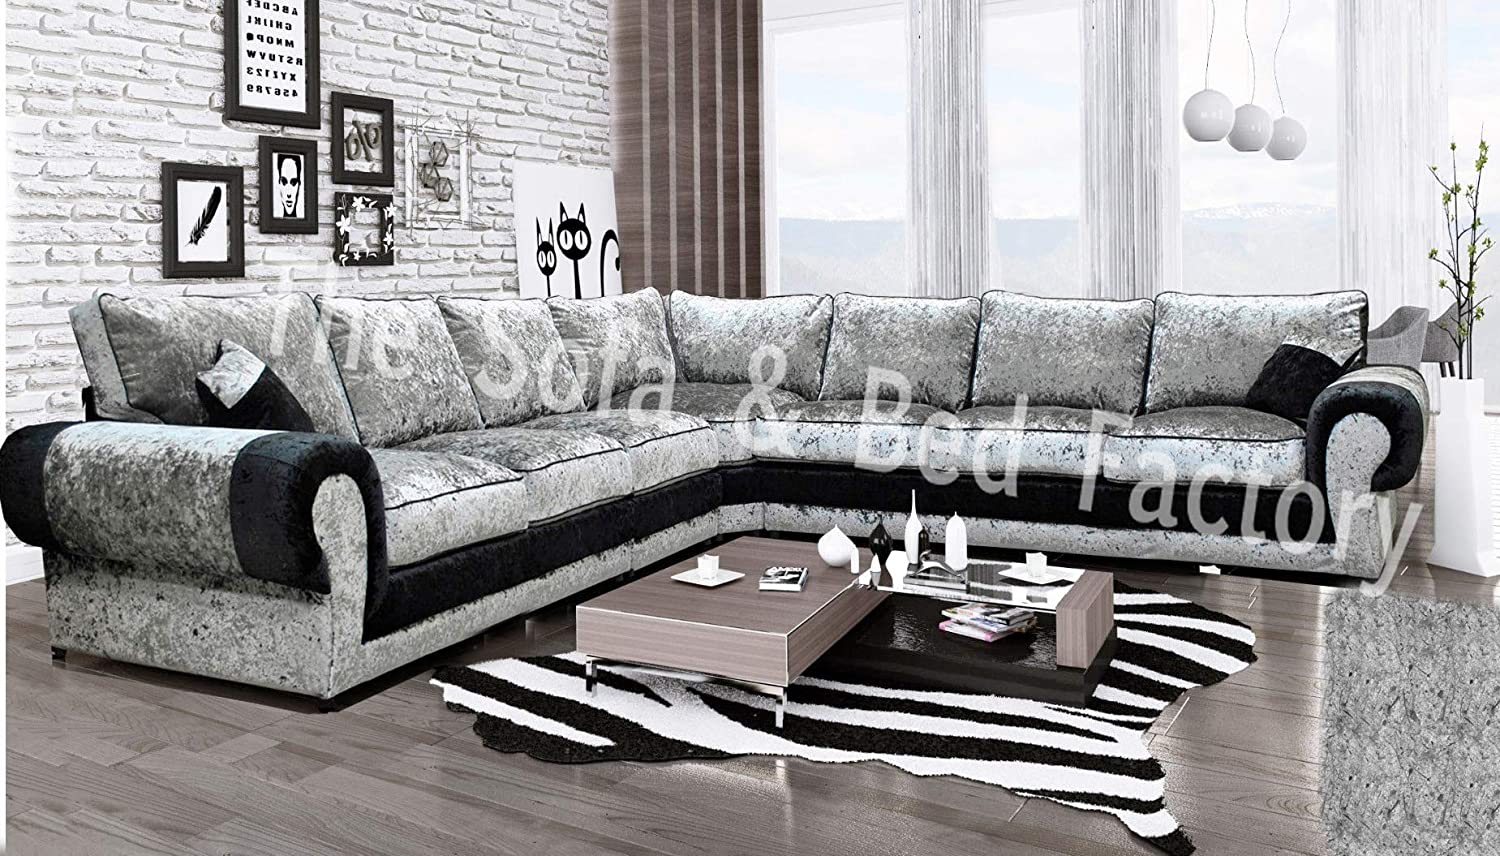 outlet store 6923e a751c Details about Luxury Lara Crushed Velvet Extra Large 7 Seater Corner Sofa  Black and Silver 3C3